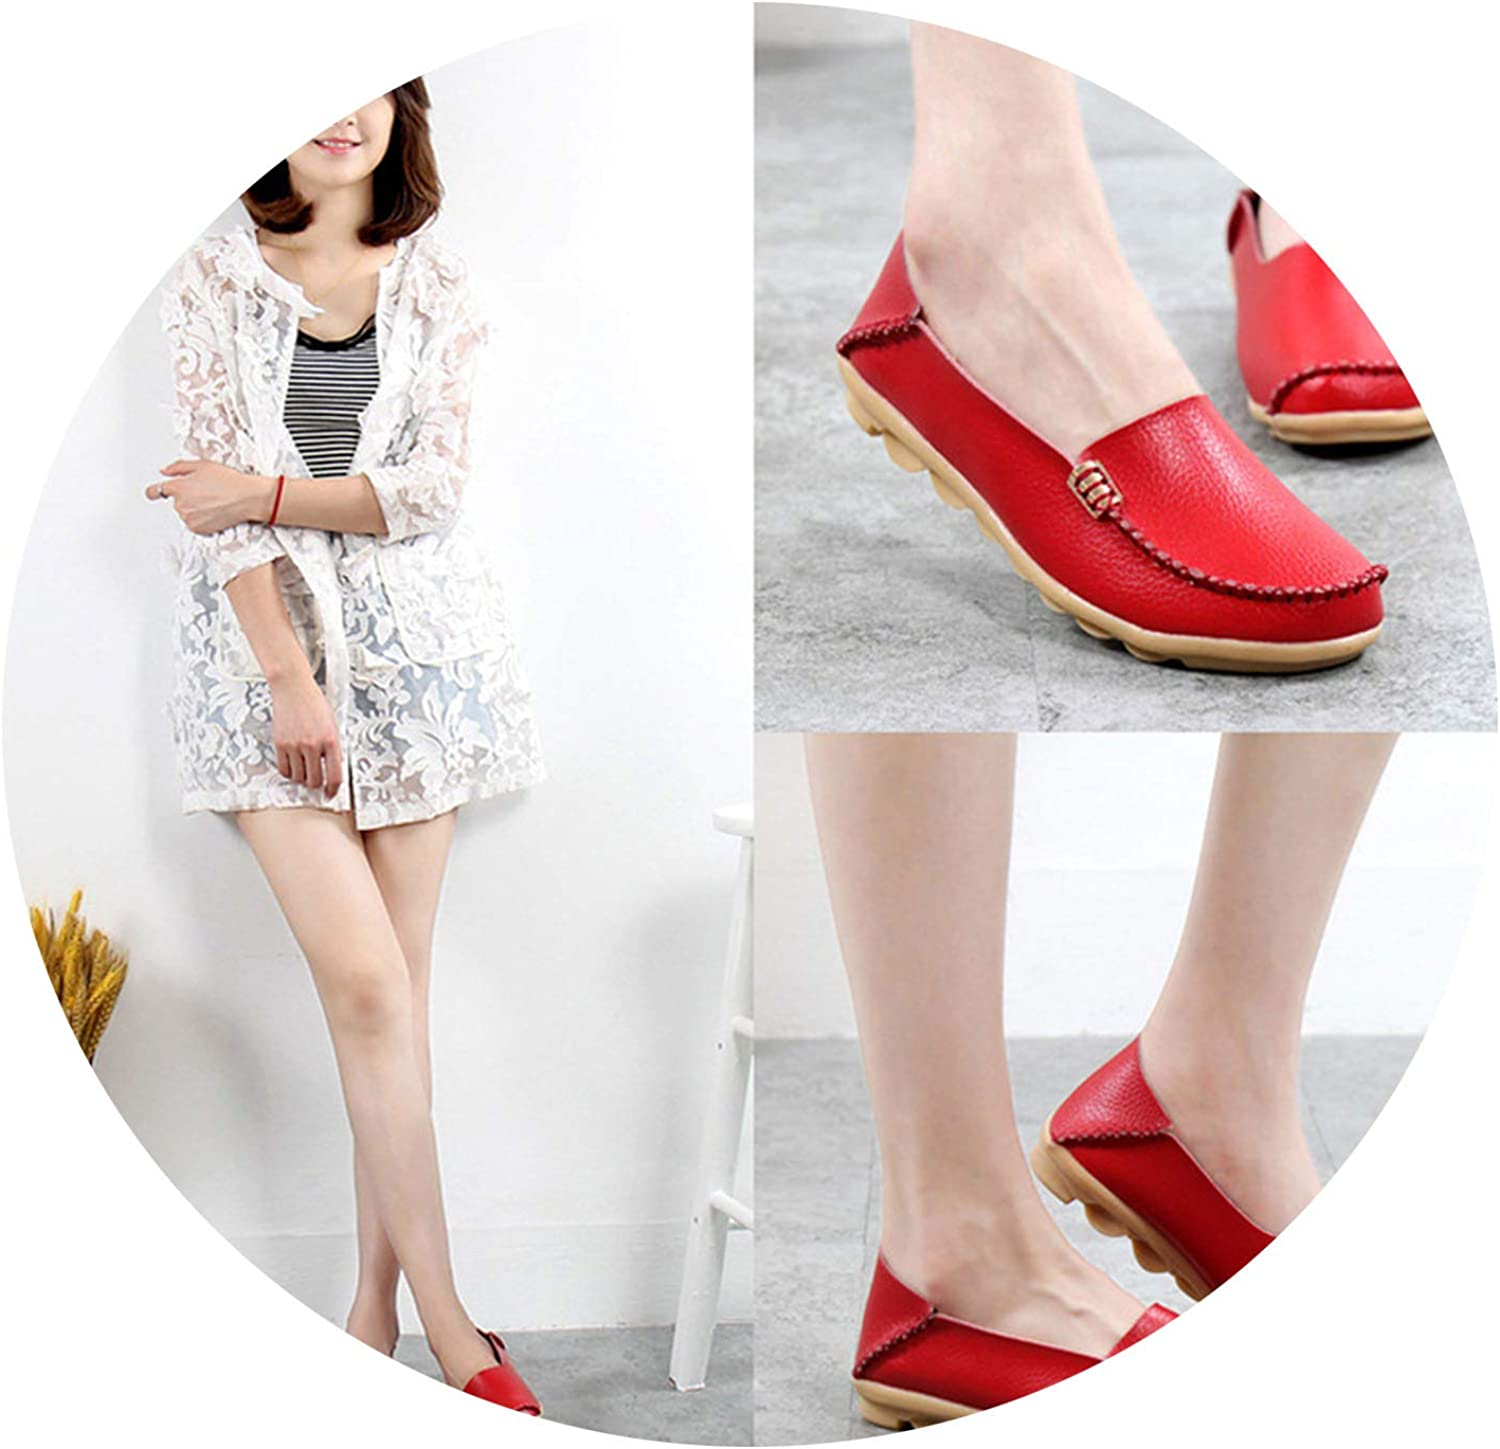 Don't mention the past Women shoes Plus Size Flat shoes Women Genuine Leather Loafers,Red,6